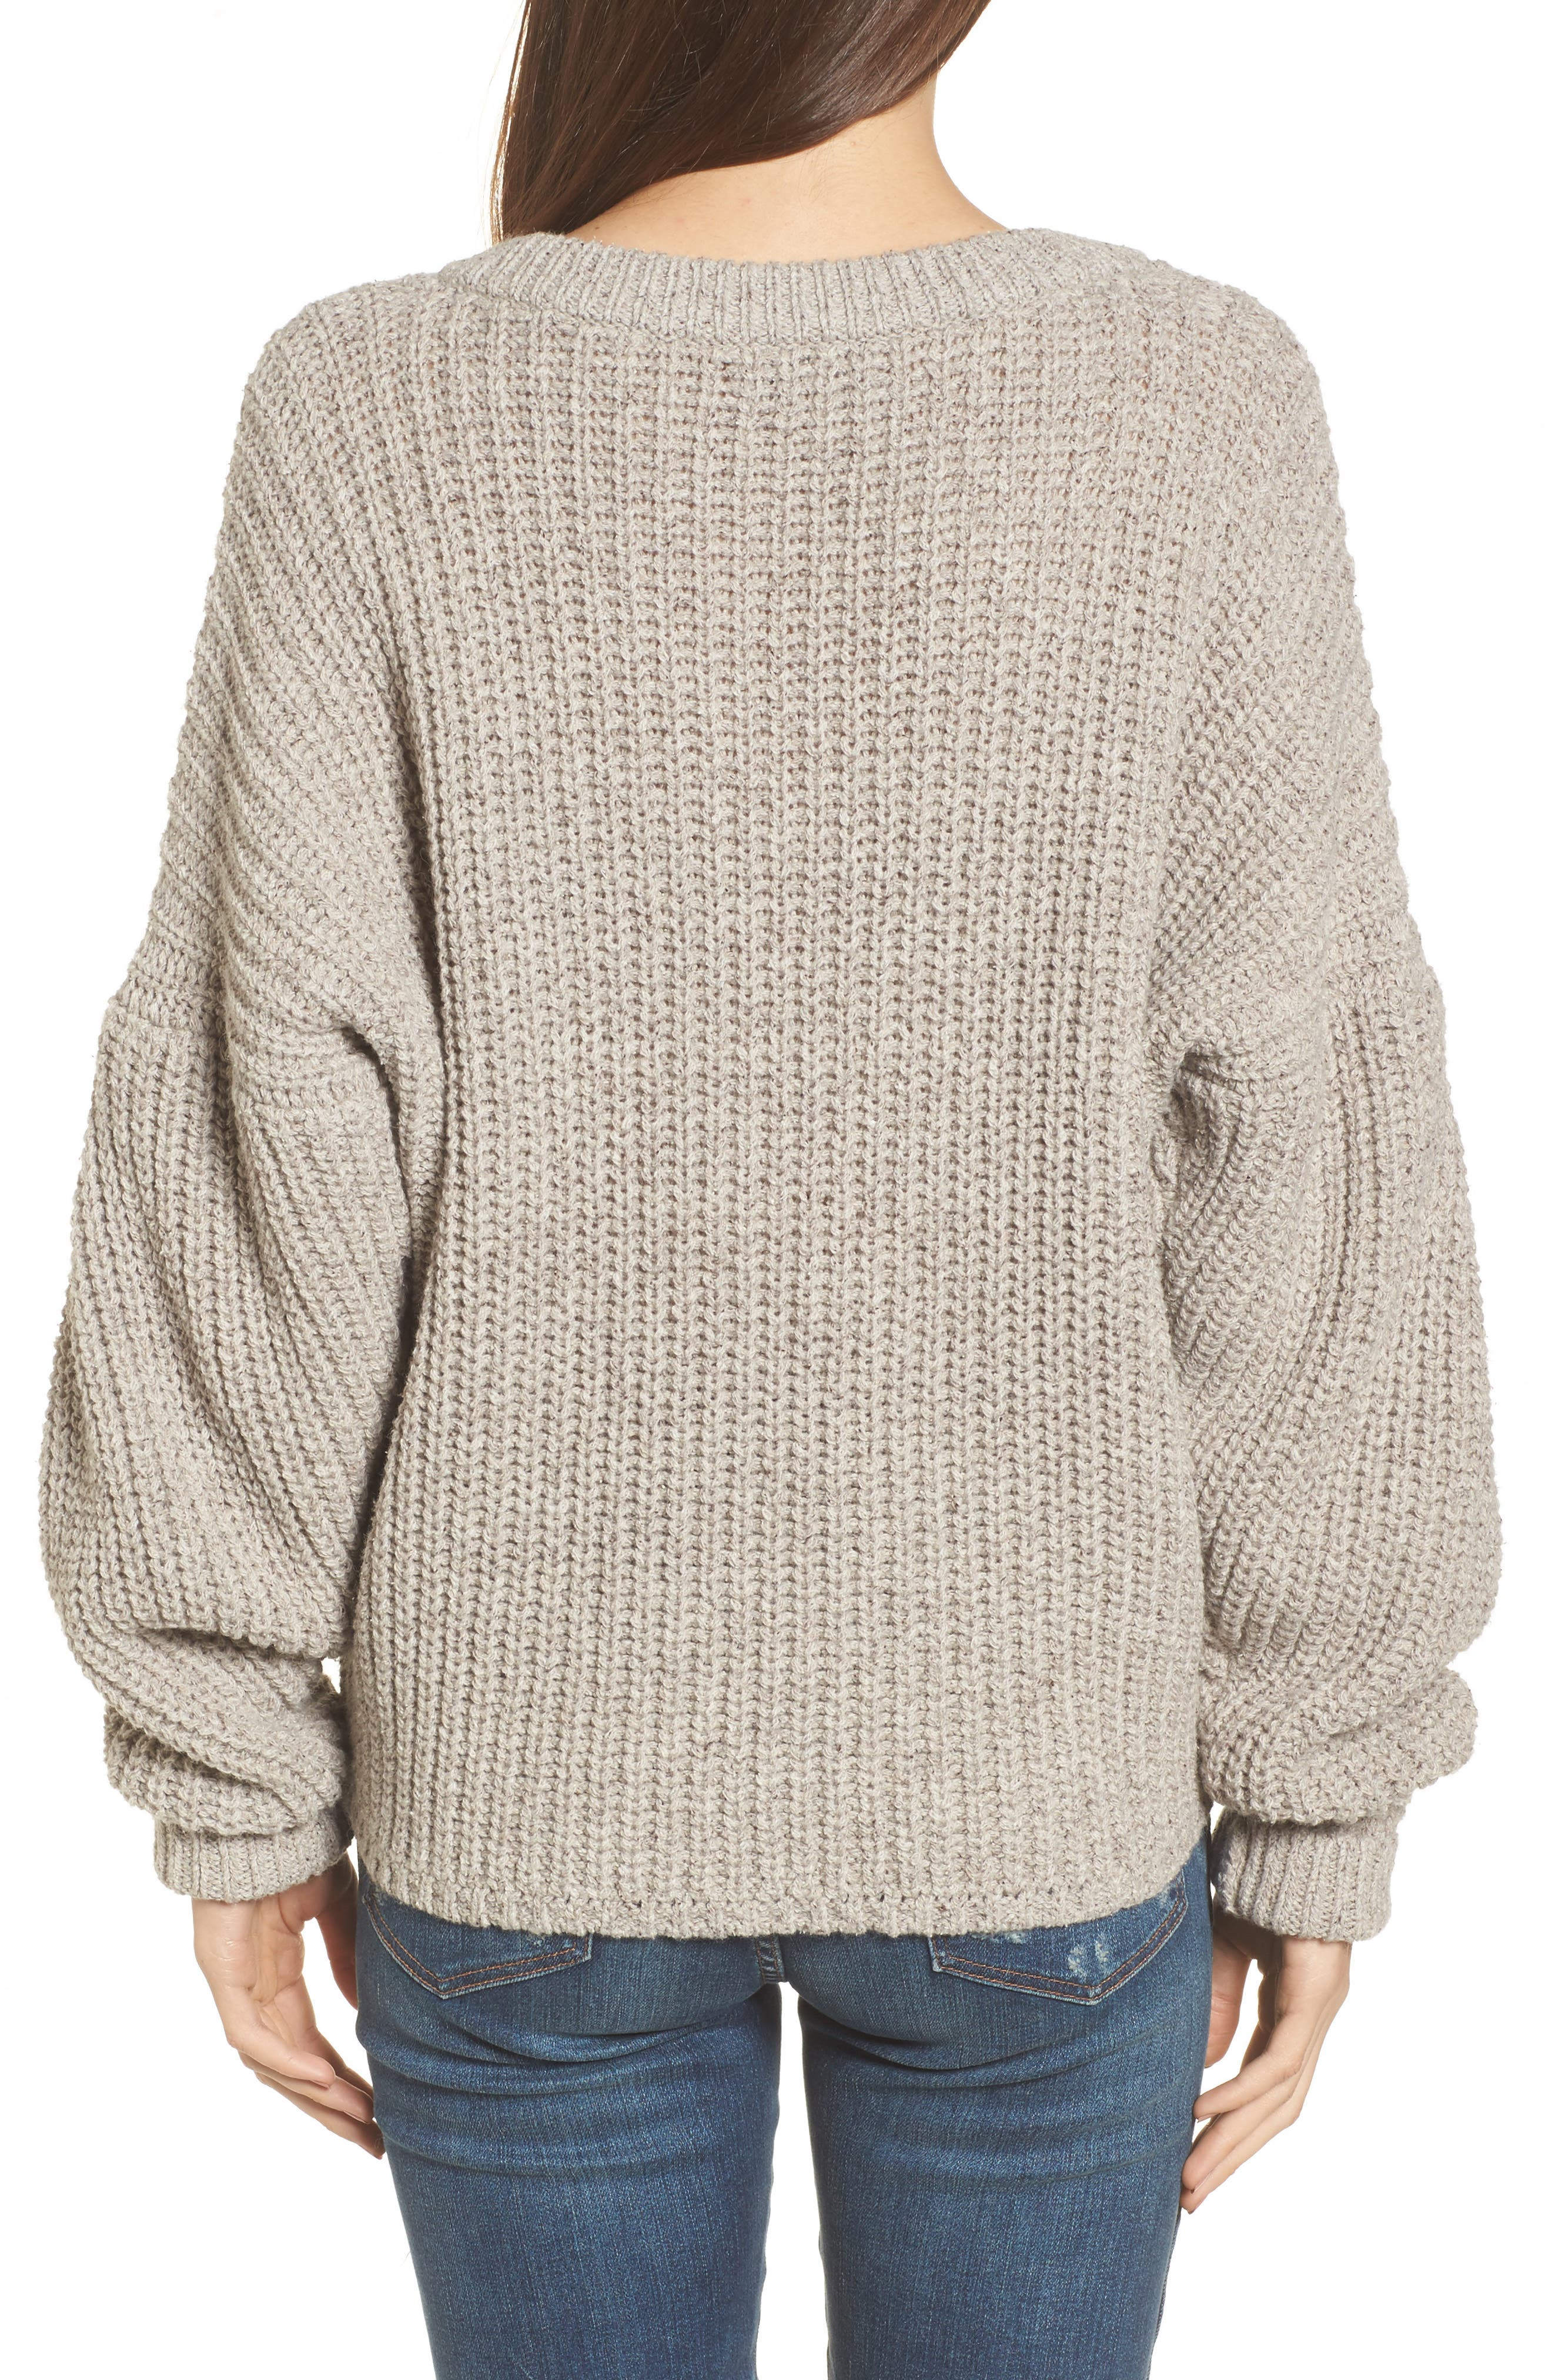 Pleat Sleeve Pullover Sweater,                             Alternate thumbnail 3, color,